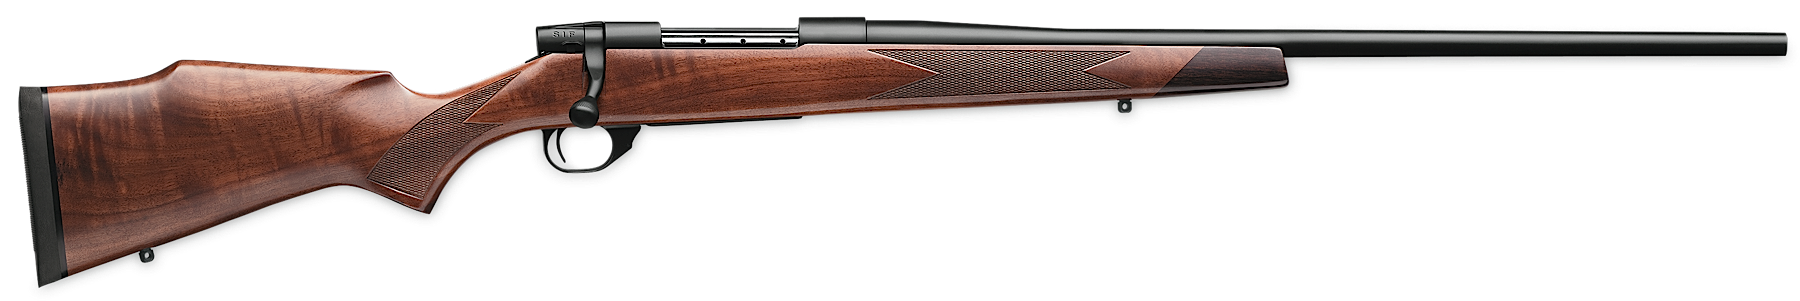 Weatherby Vanguard Sporter 7mm-08 Rem 24